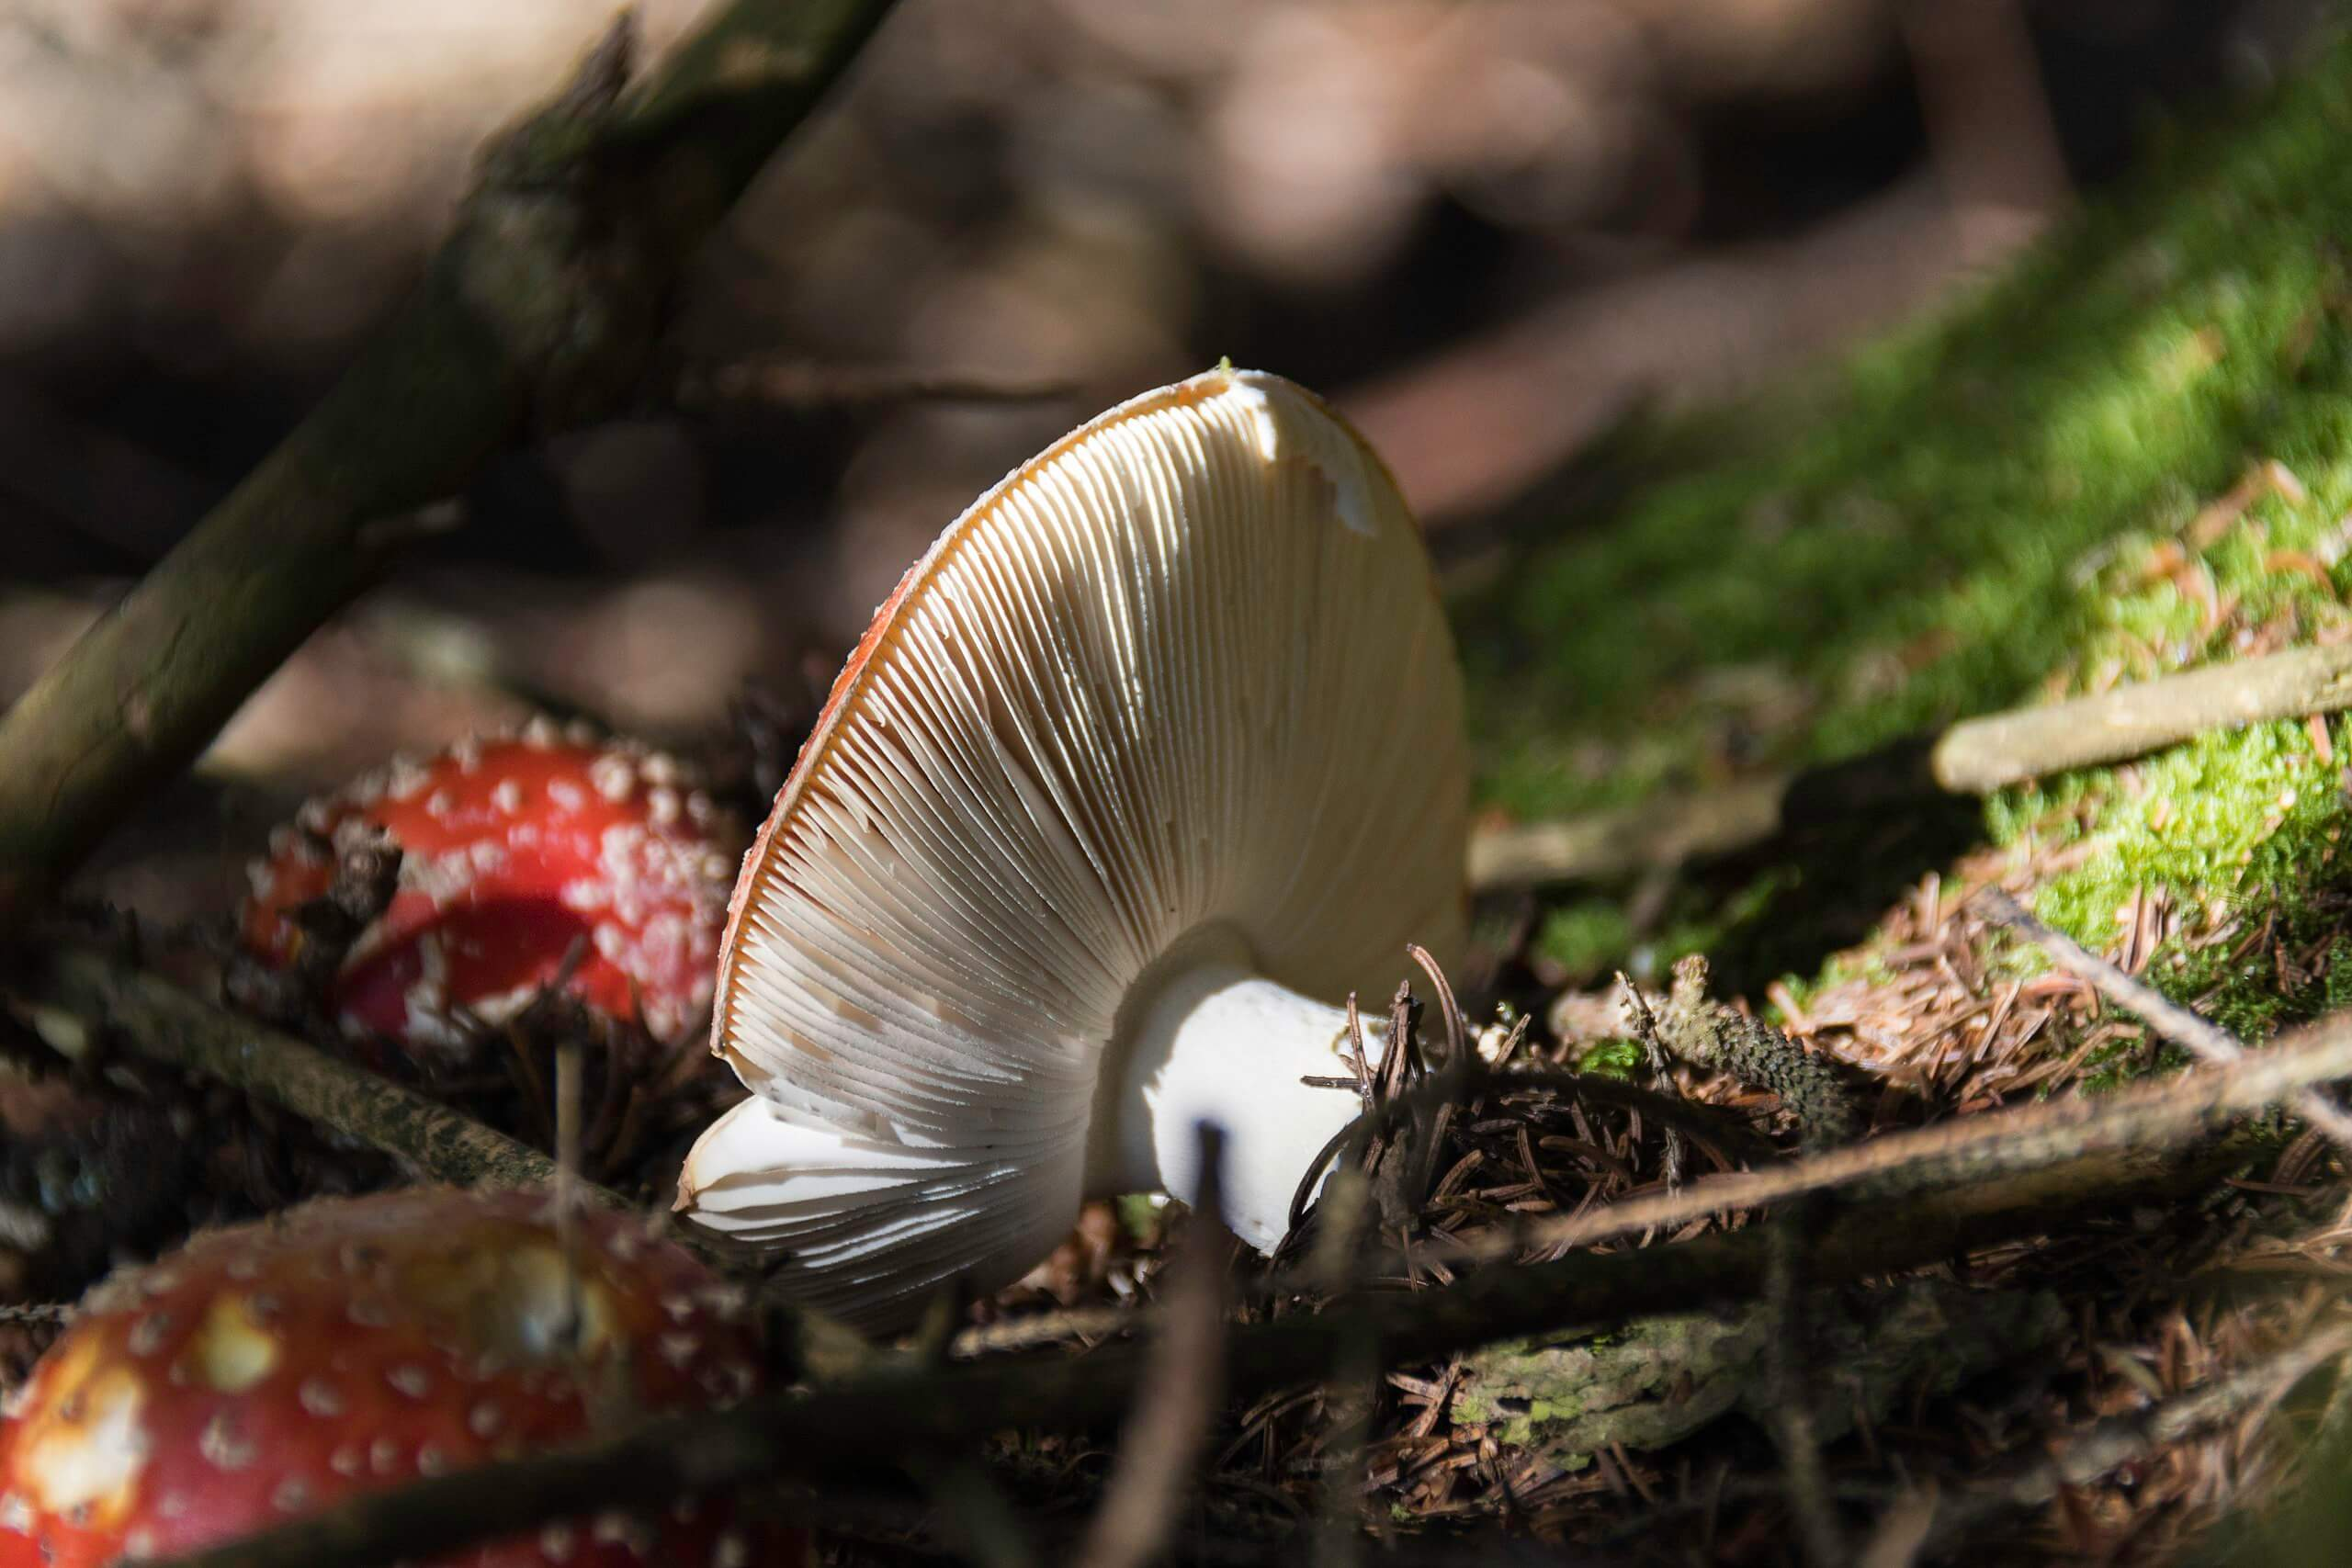 The gills of the Fly Agaric